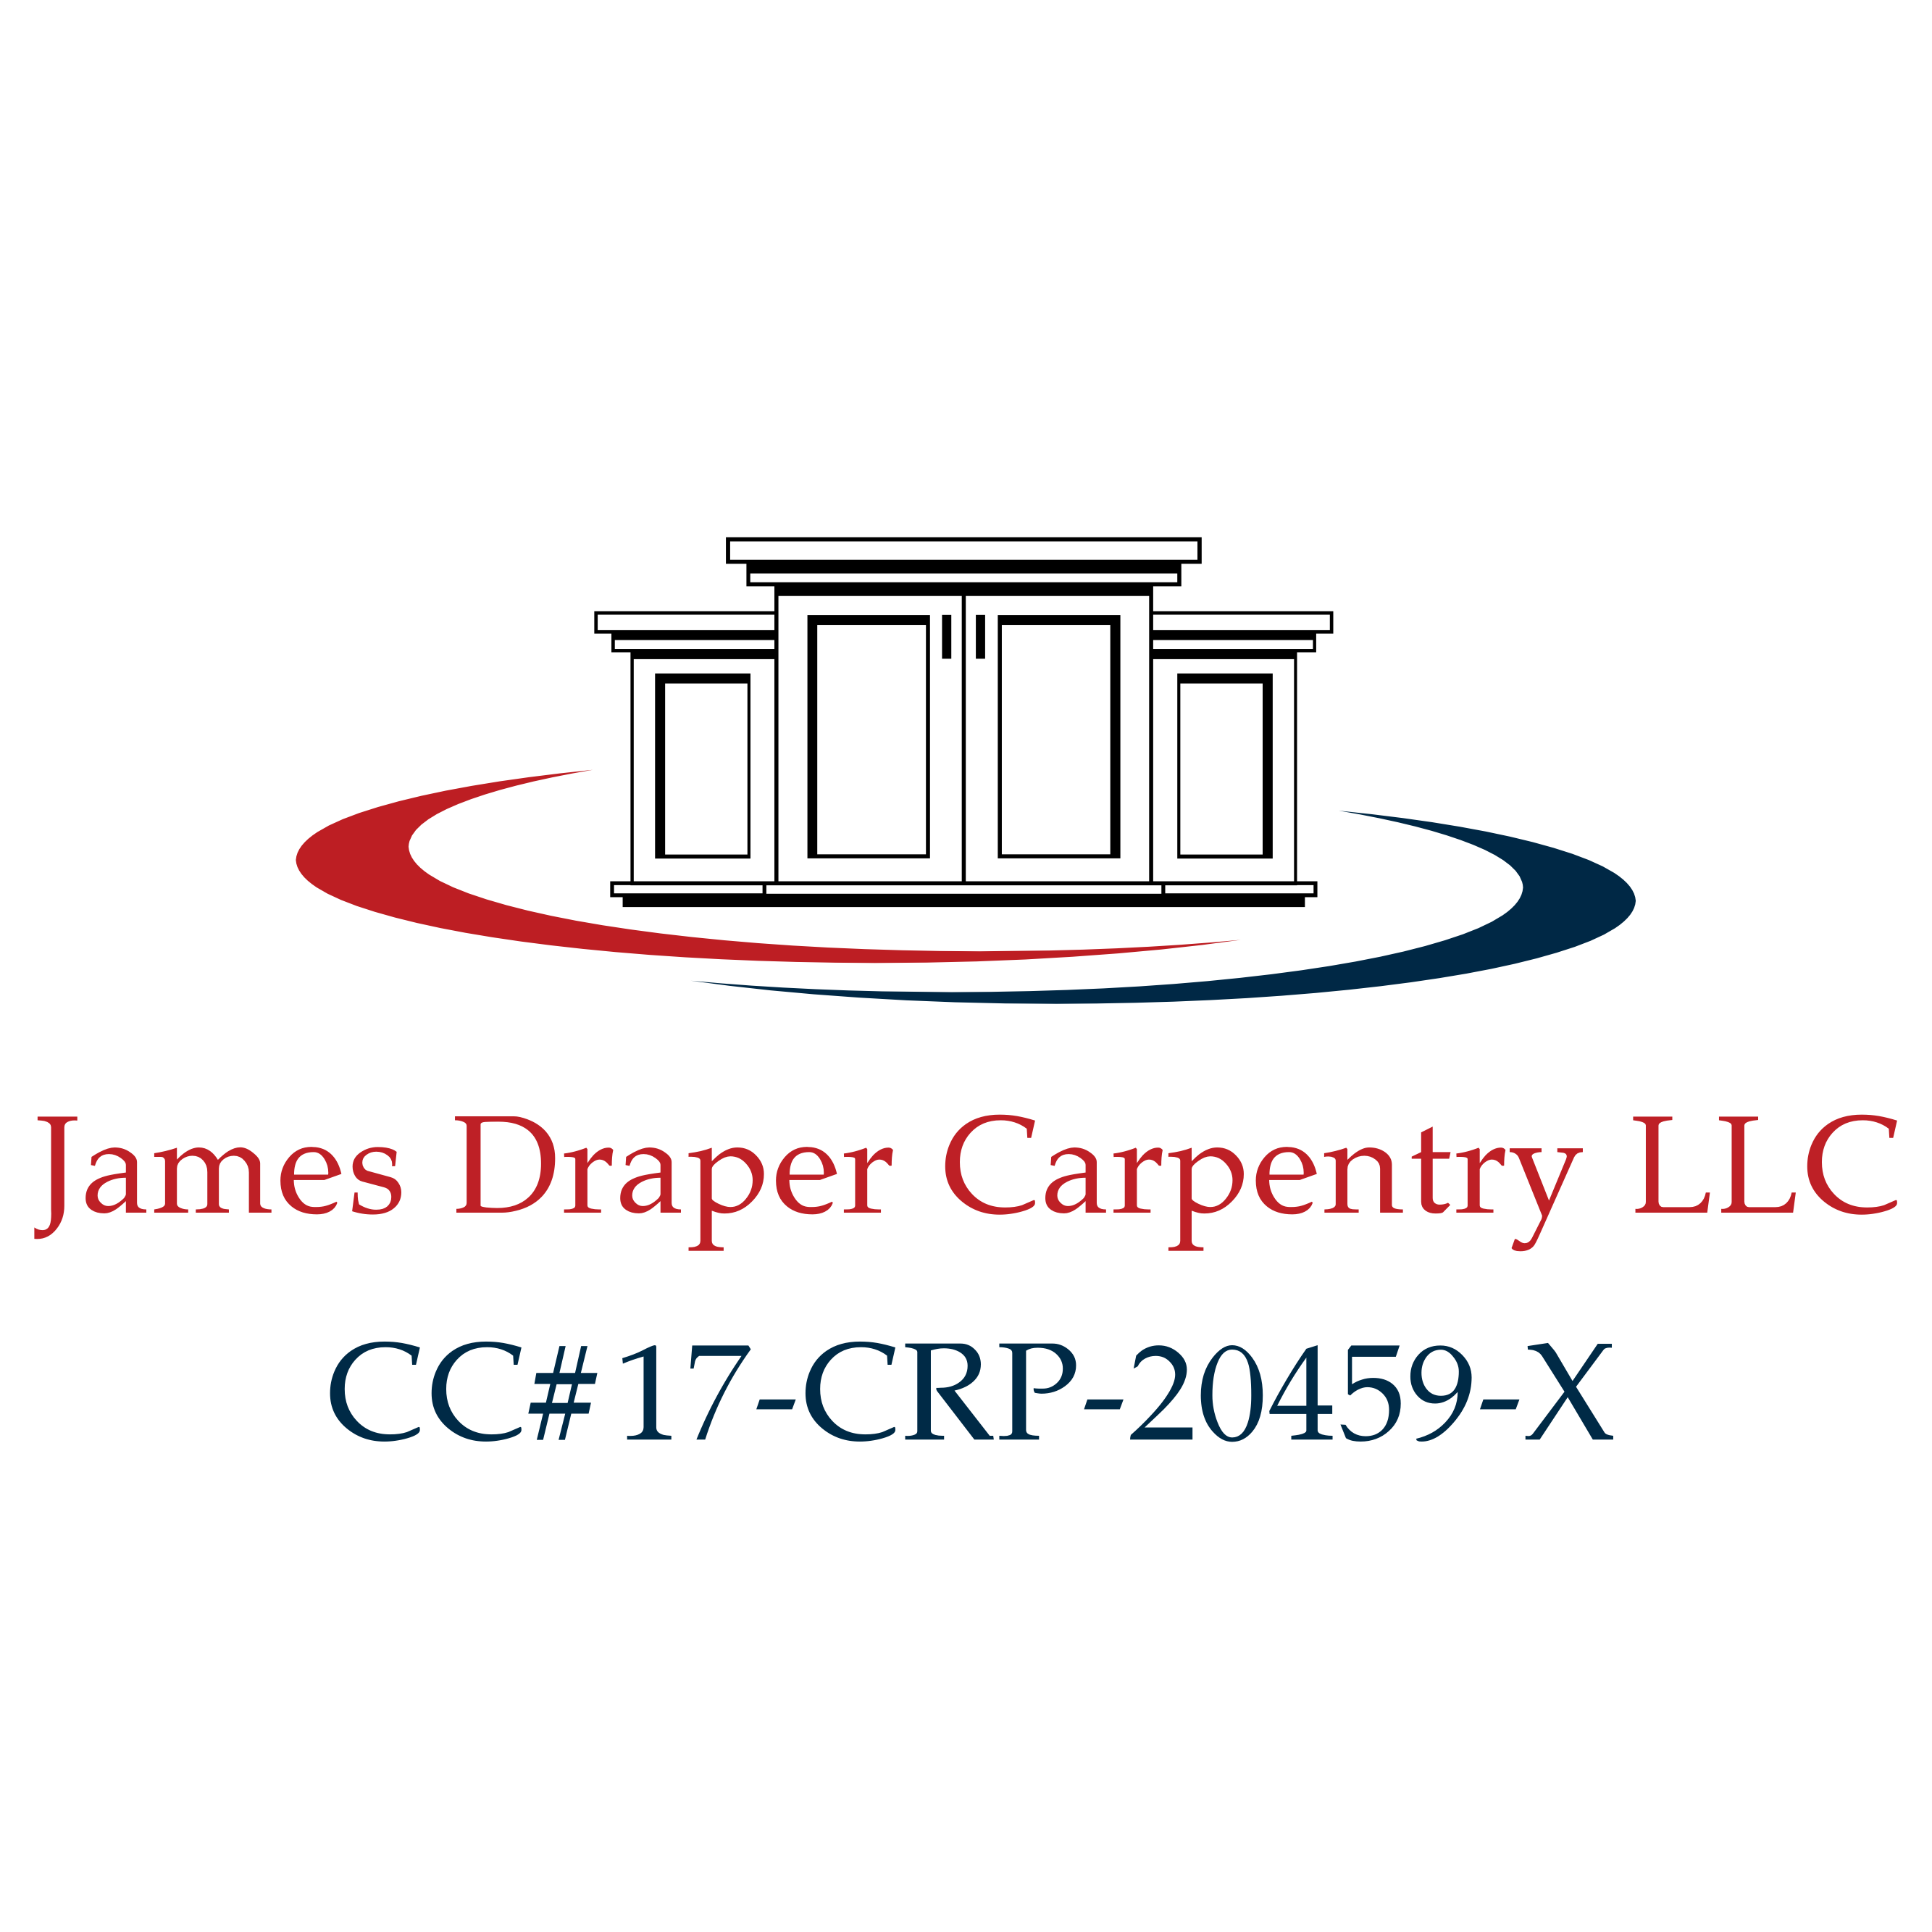 James Draper Carpentry LLC